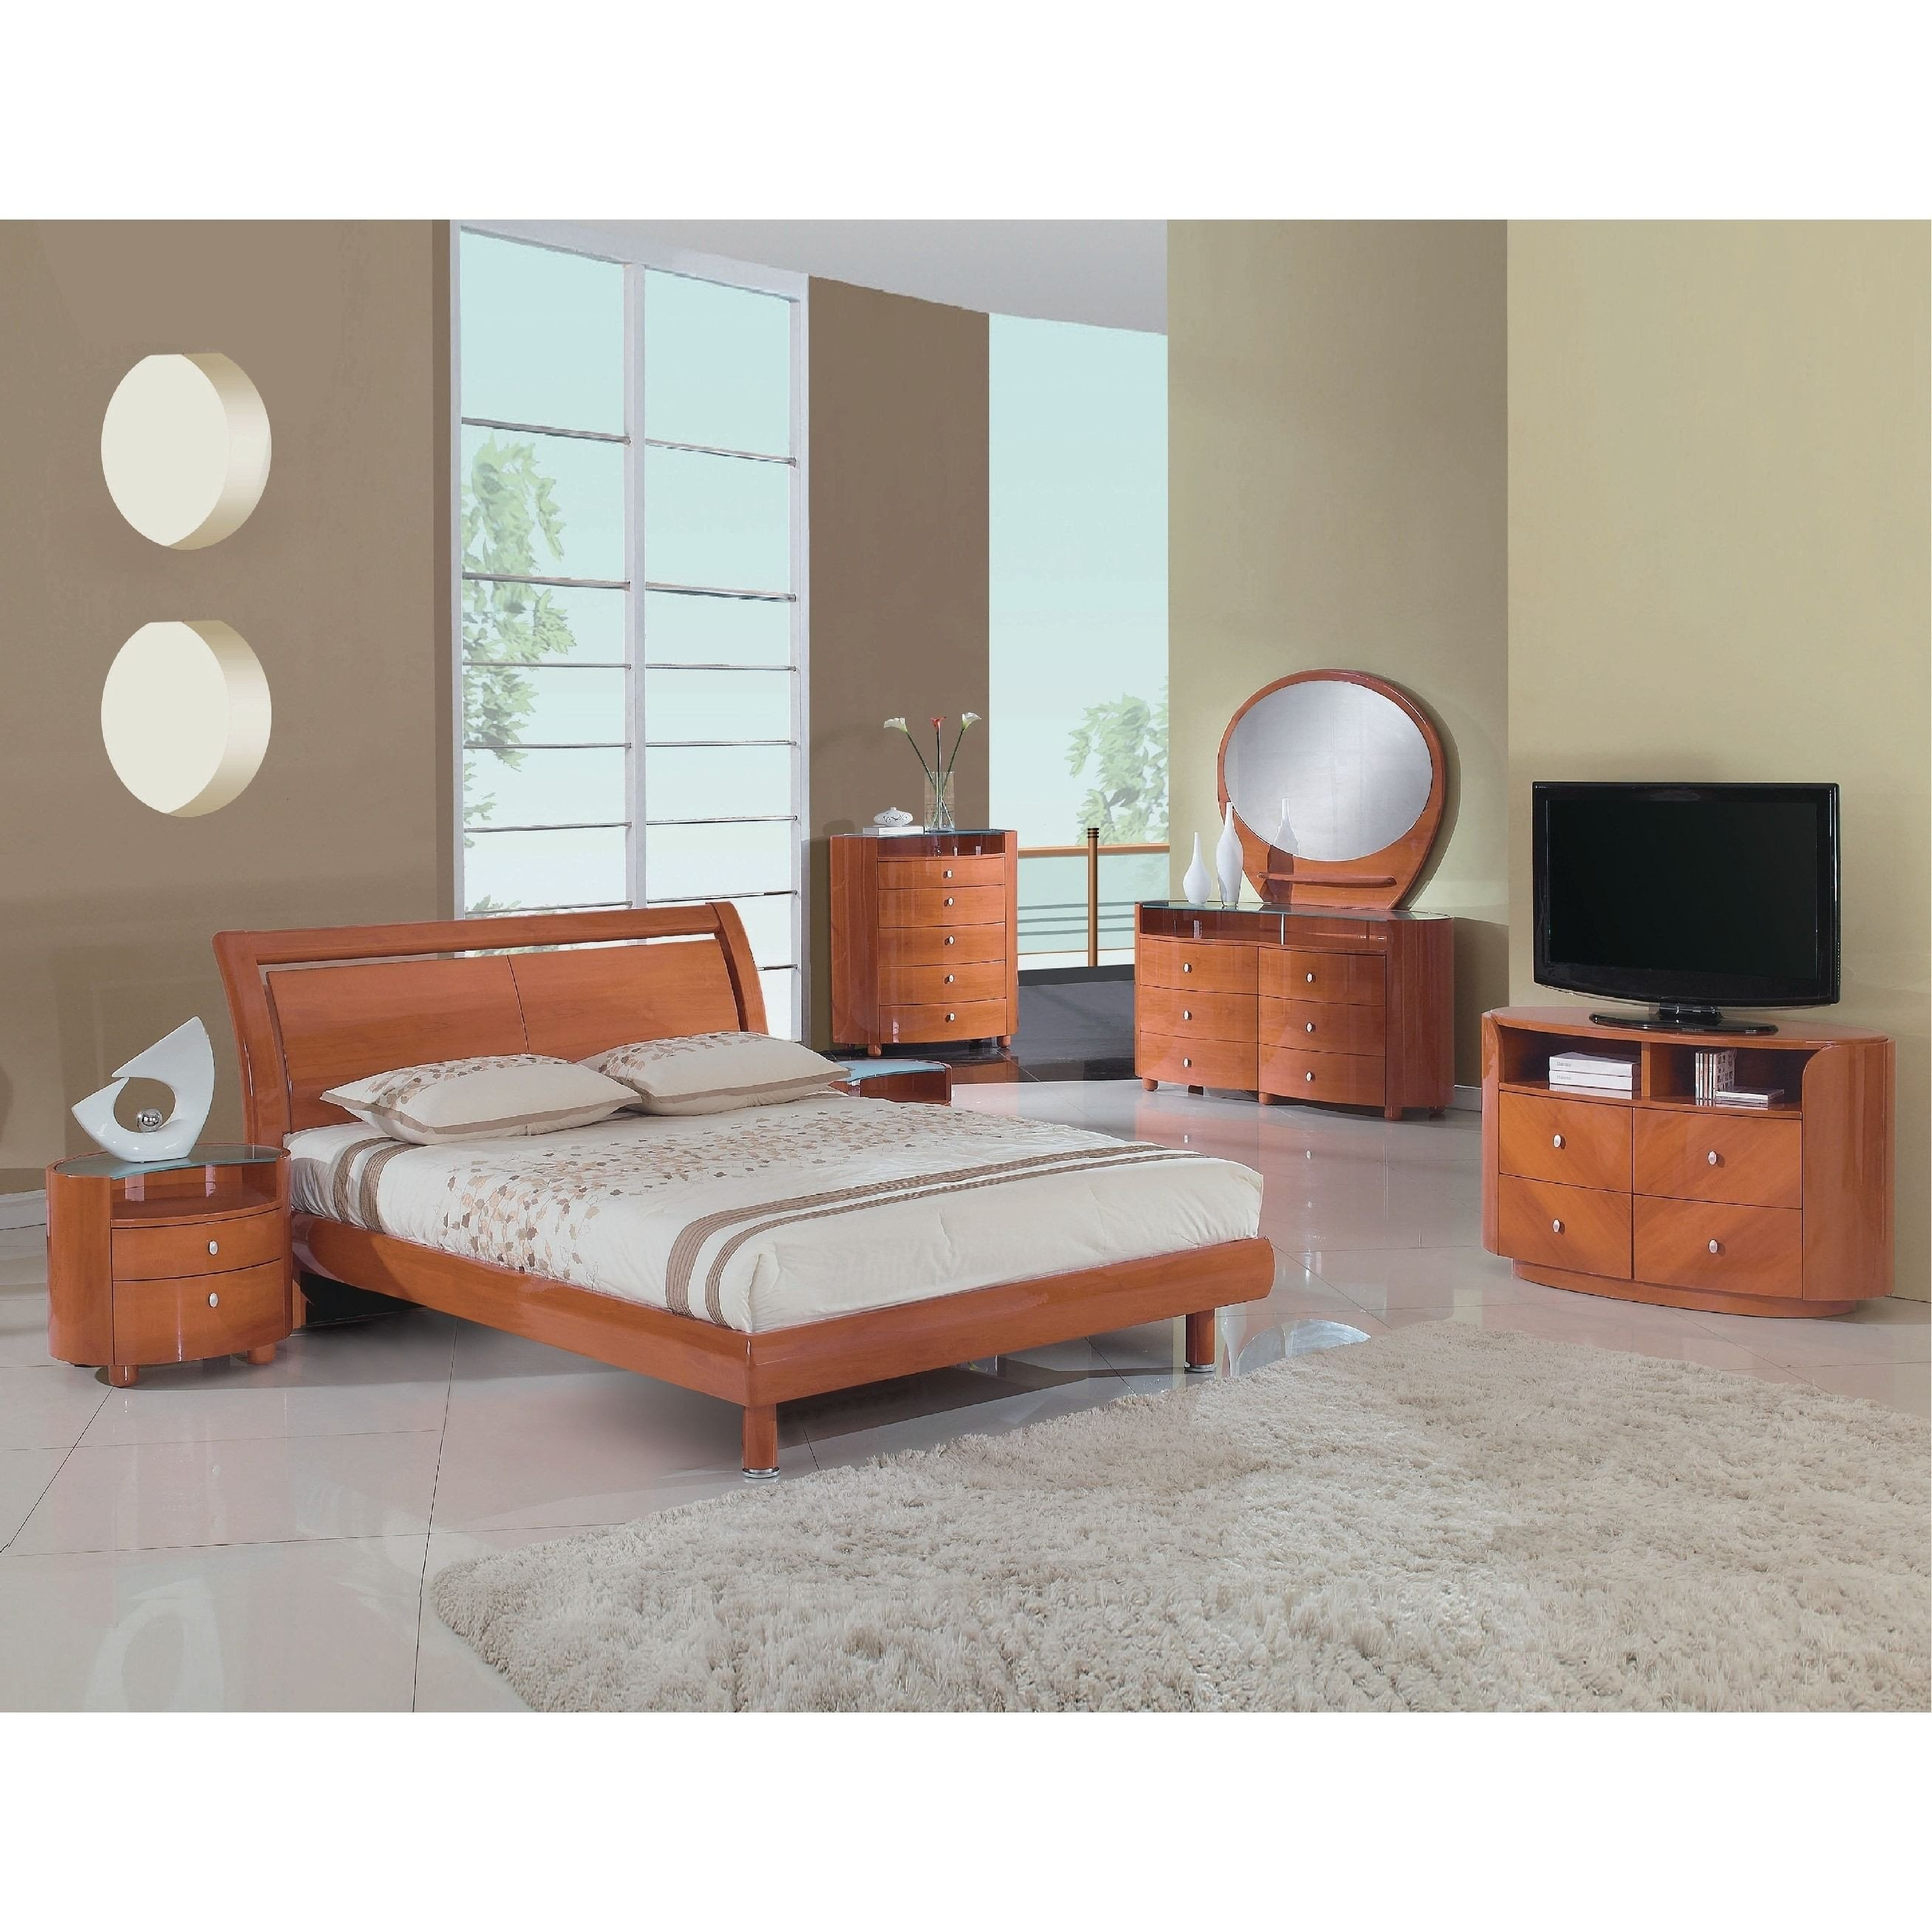 Cheap Bedroom Decor Online Shopping Inspirational Line Shopping Bedding Furniture Electronics Jewelry